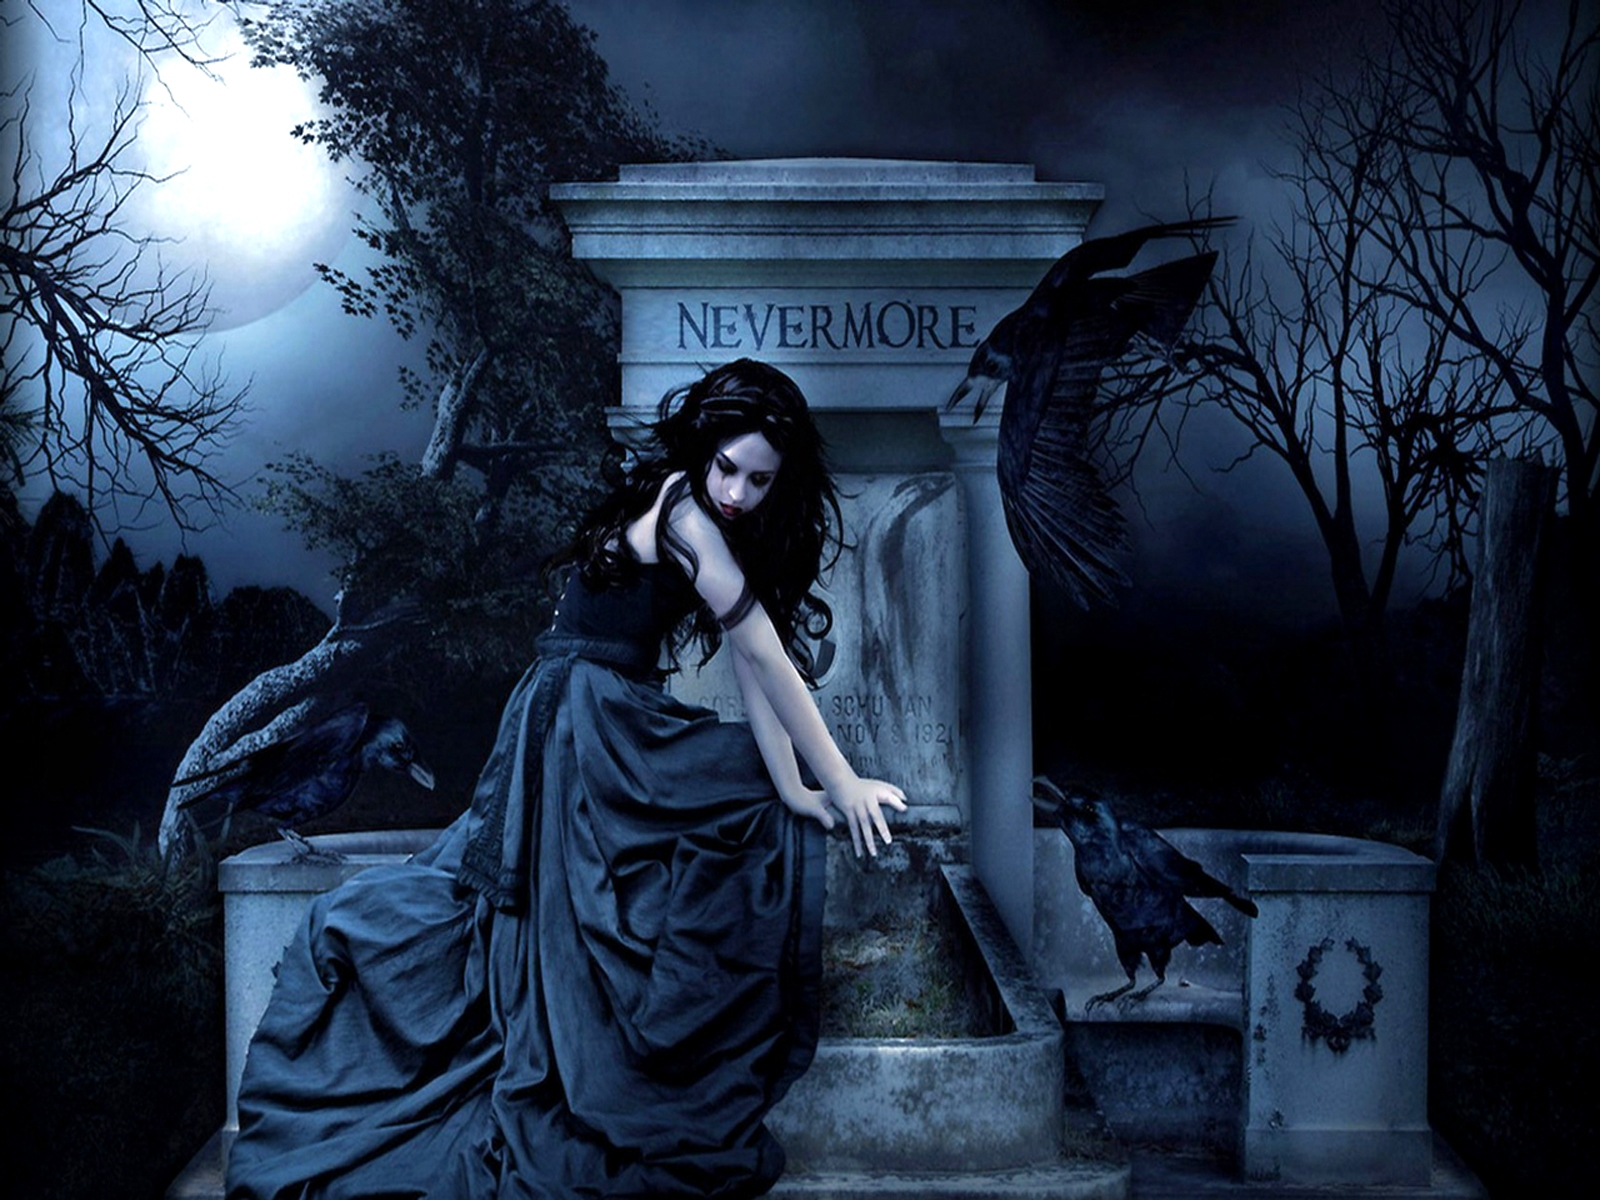 Gothic women dark fantasy poe raven wallpaper 1600x1200 28003 1600x1200